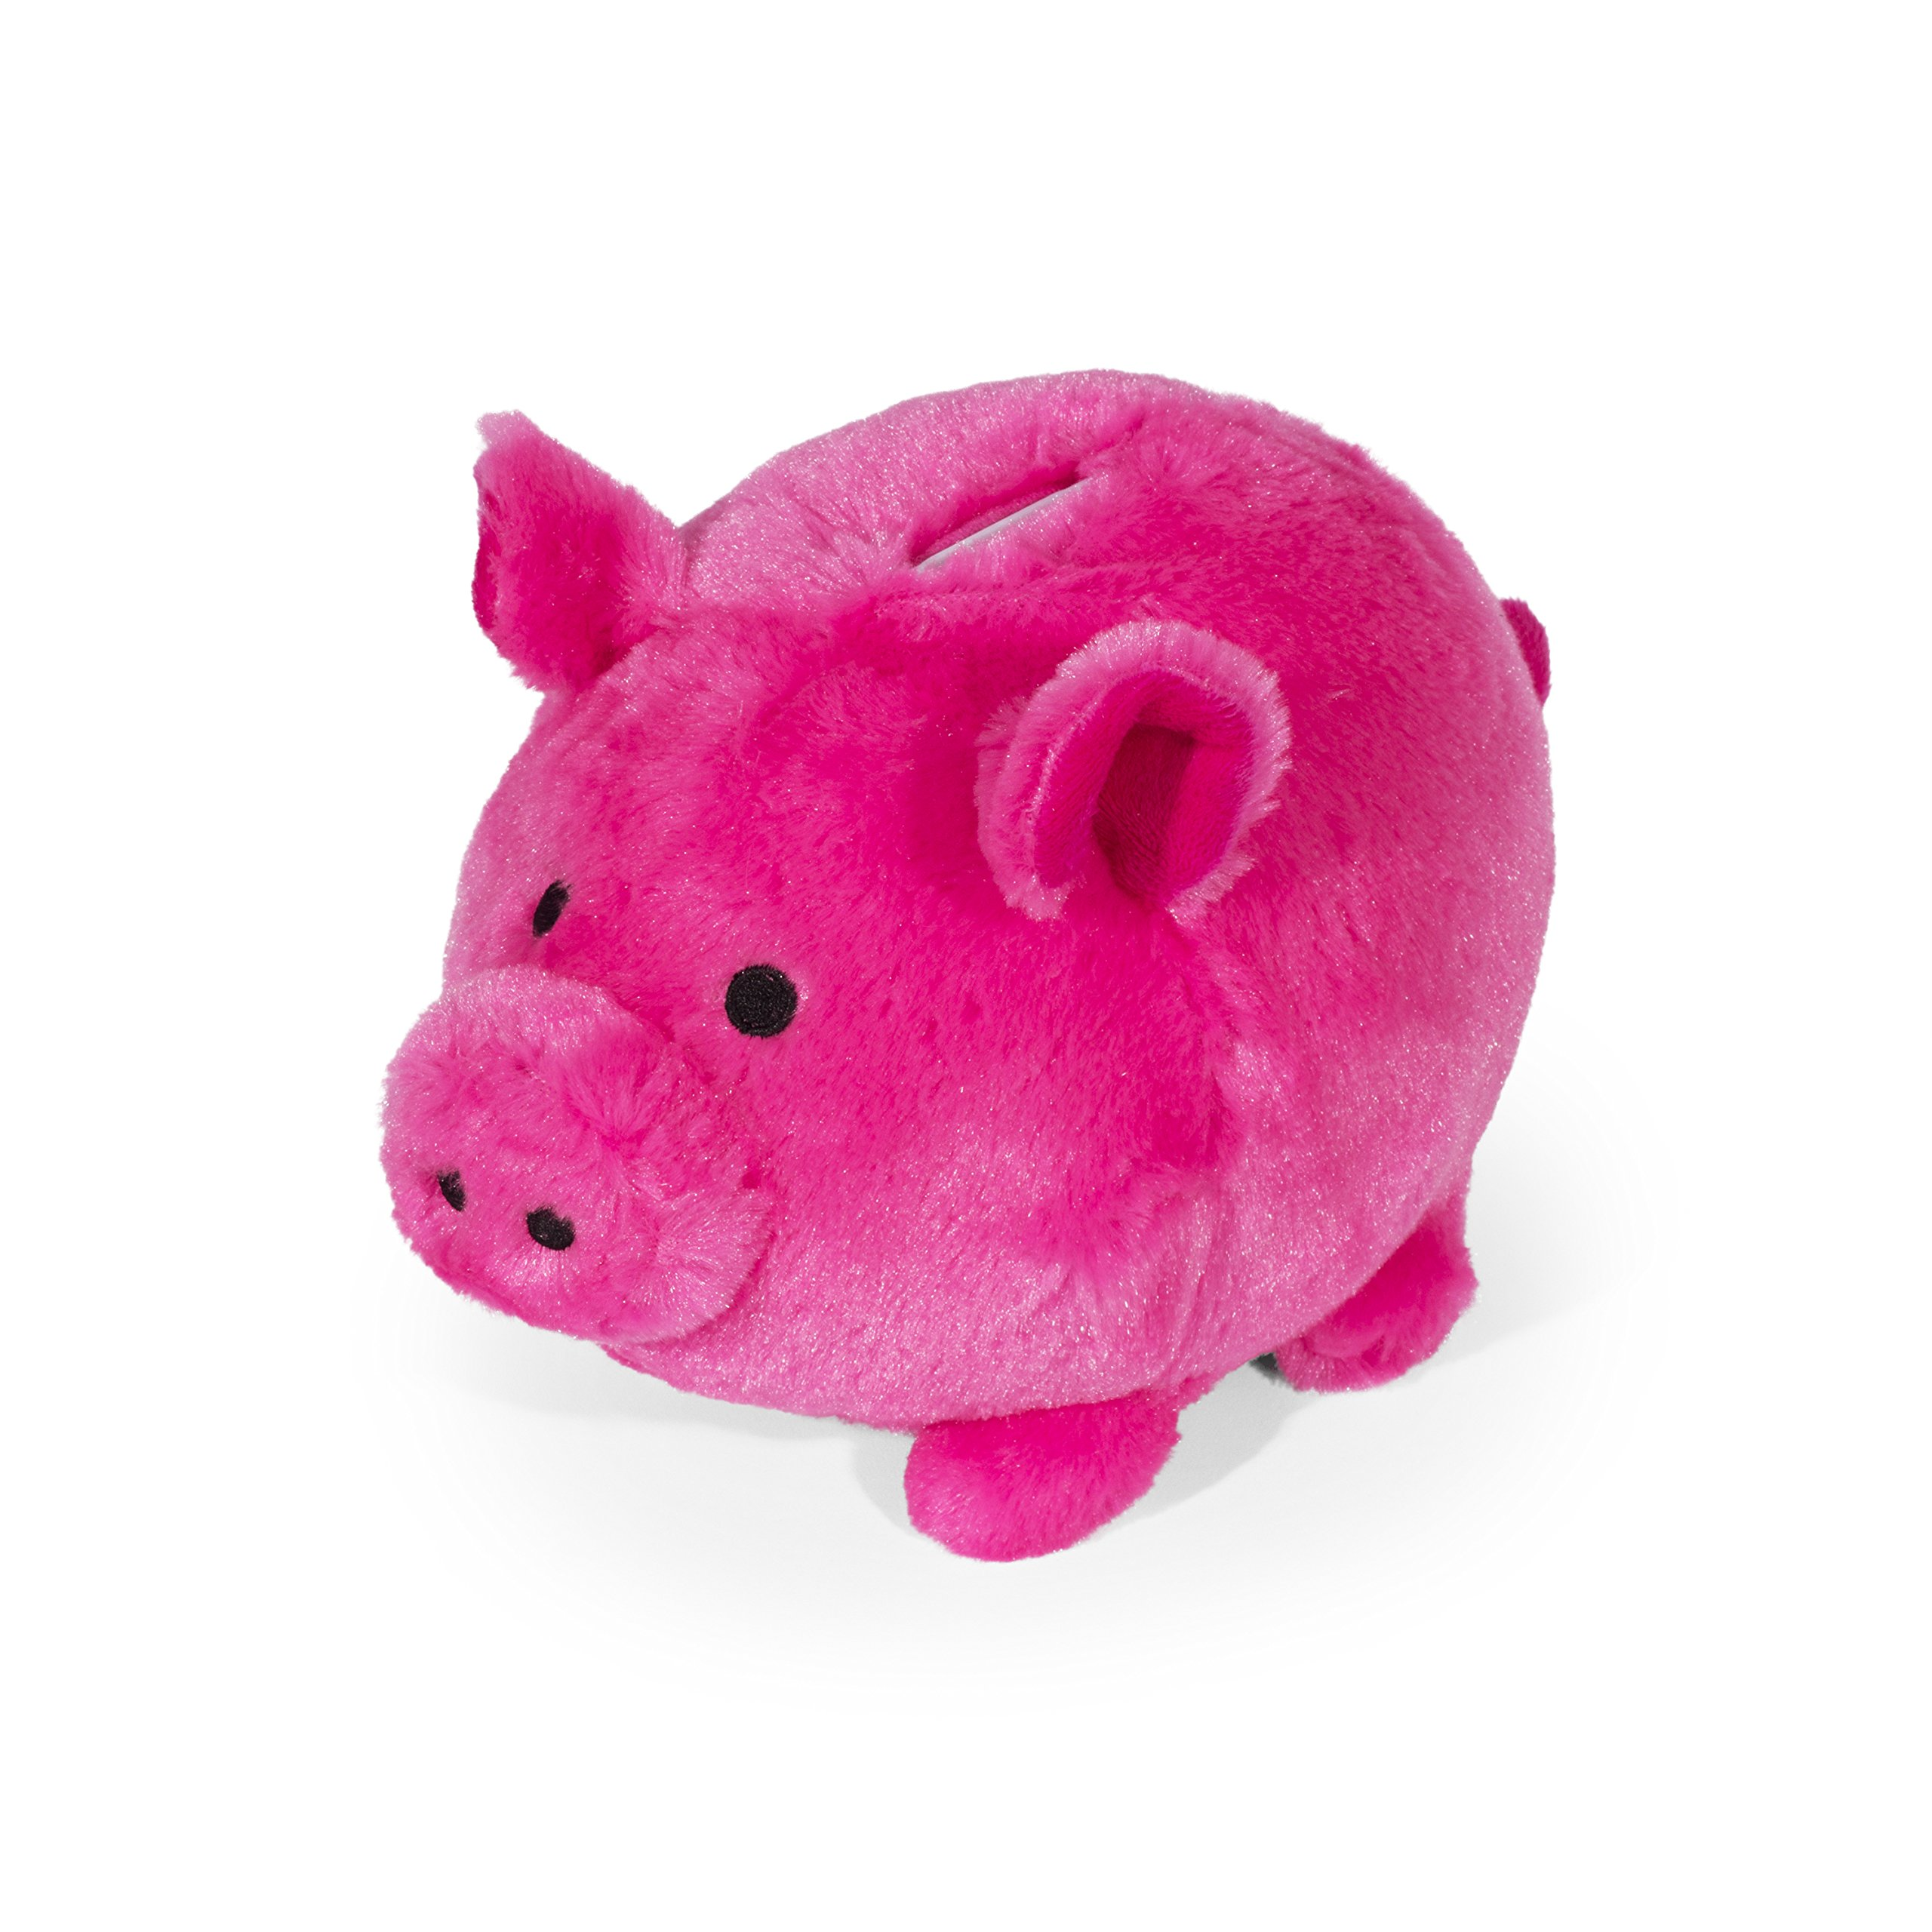 Jumbo Plush Hot Pink Piggy Bank